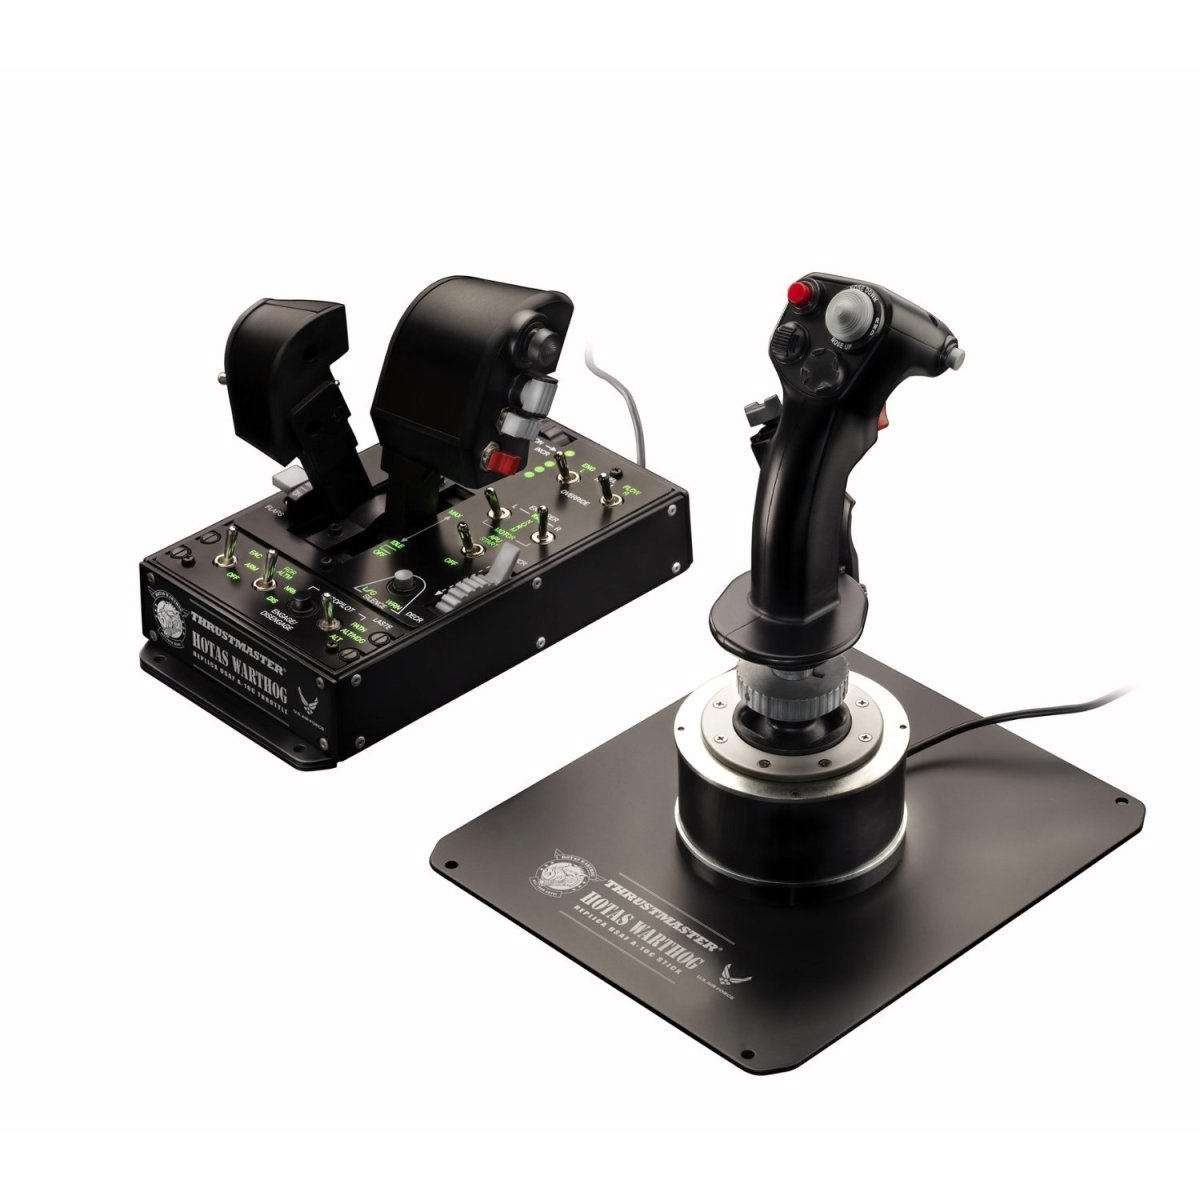 Best Flight Simulator Joysticks and Hotas Reviews 2015